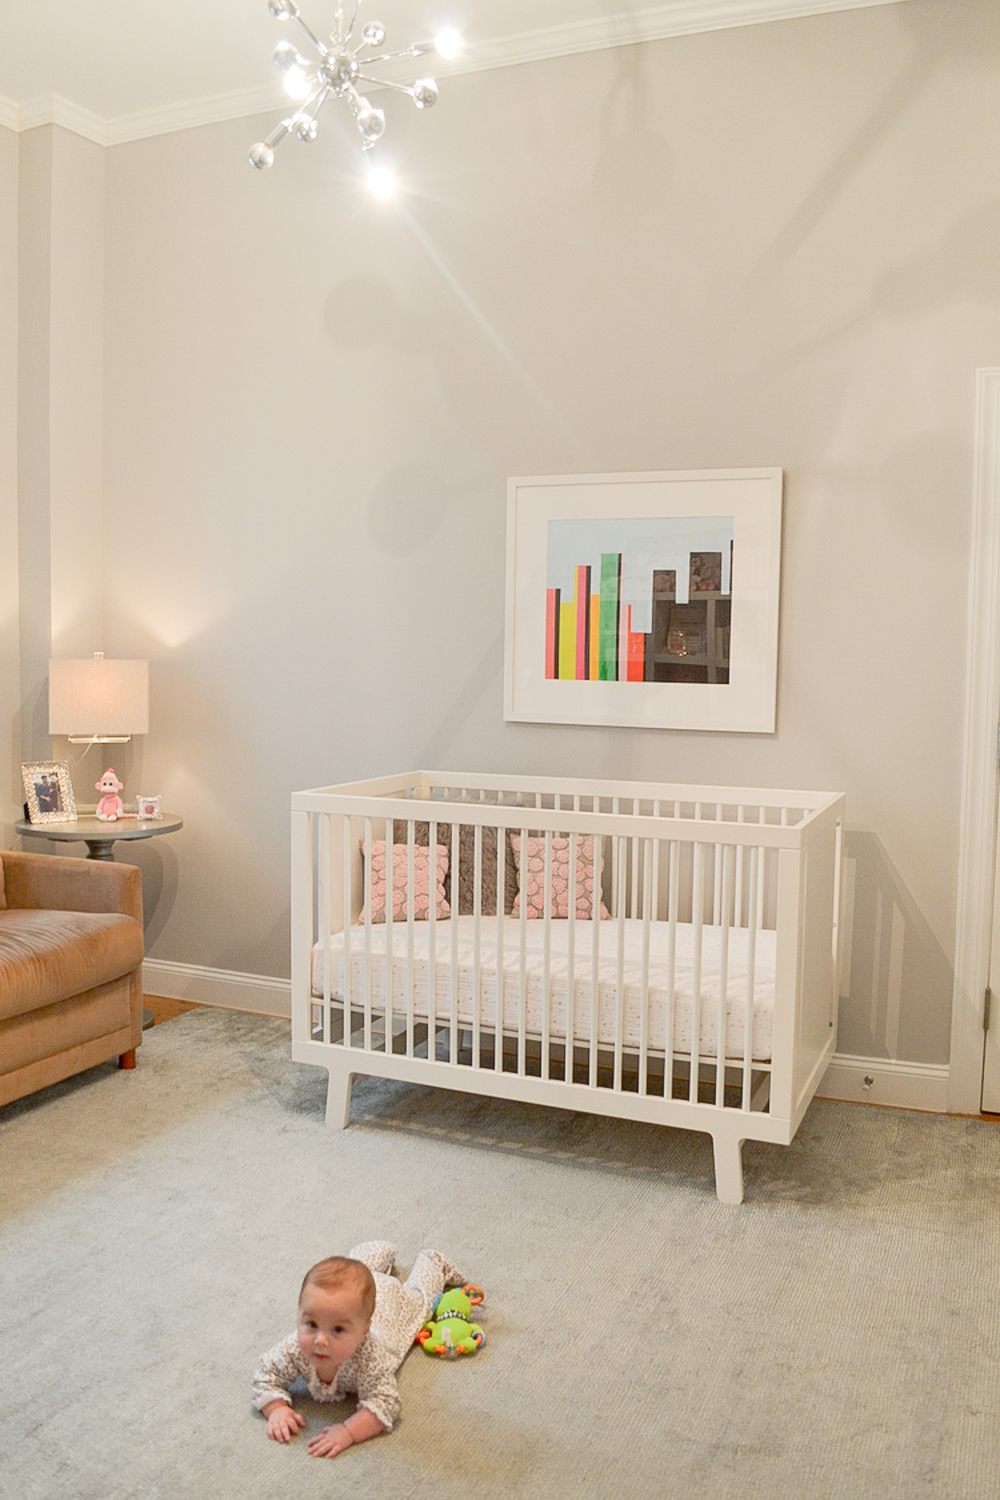 The Oeuf Sparrow Crib, Grey Pedestal Table by Safavieh and the crystal lamp (Homegoods!) all came with us to SF. Oh yeah, and the baby!